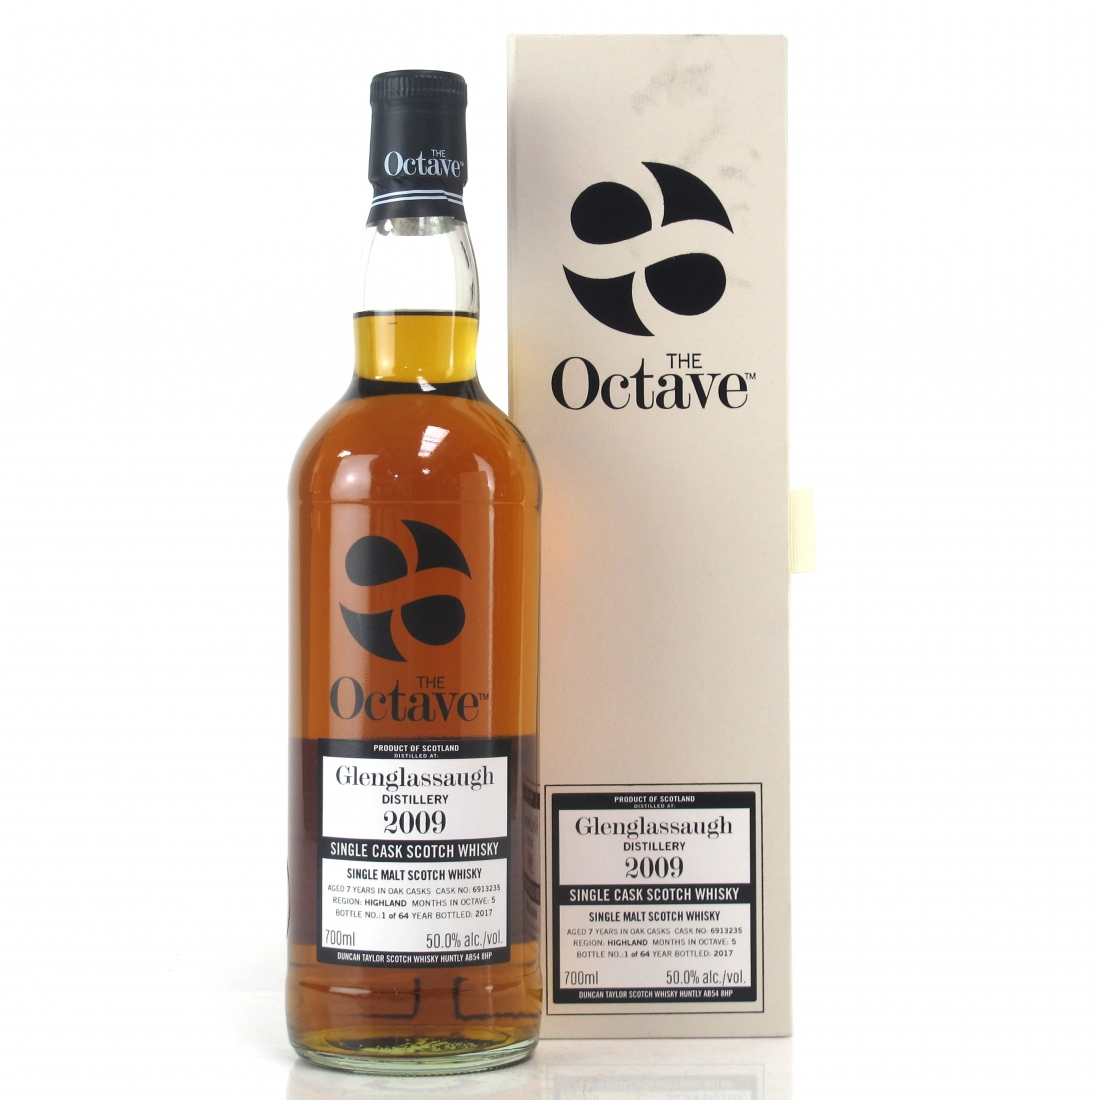 Glenglassaugh 2009 Duncan Taylor 7 Year Old / Octave